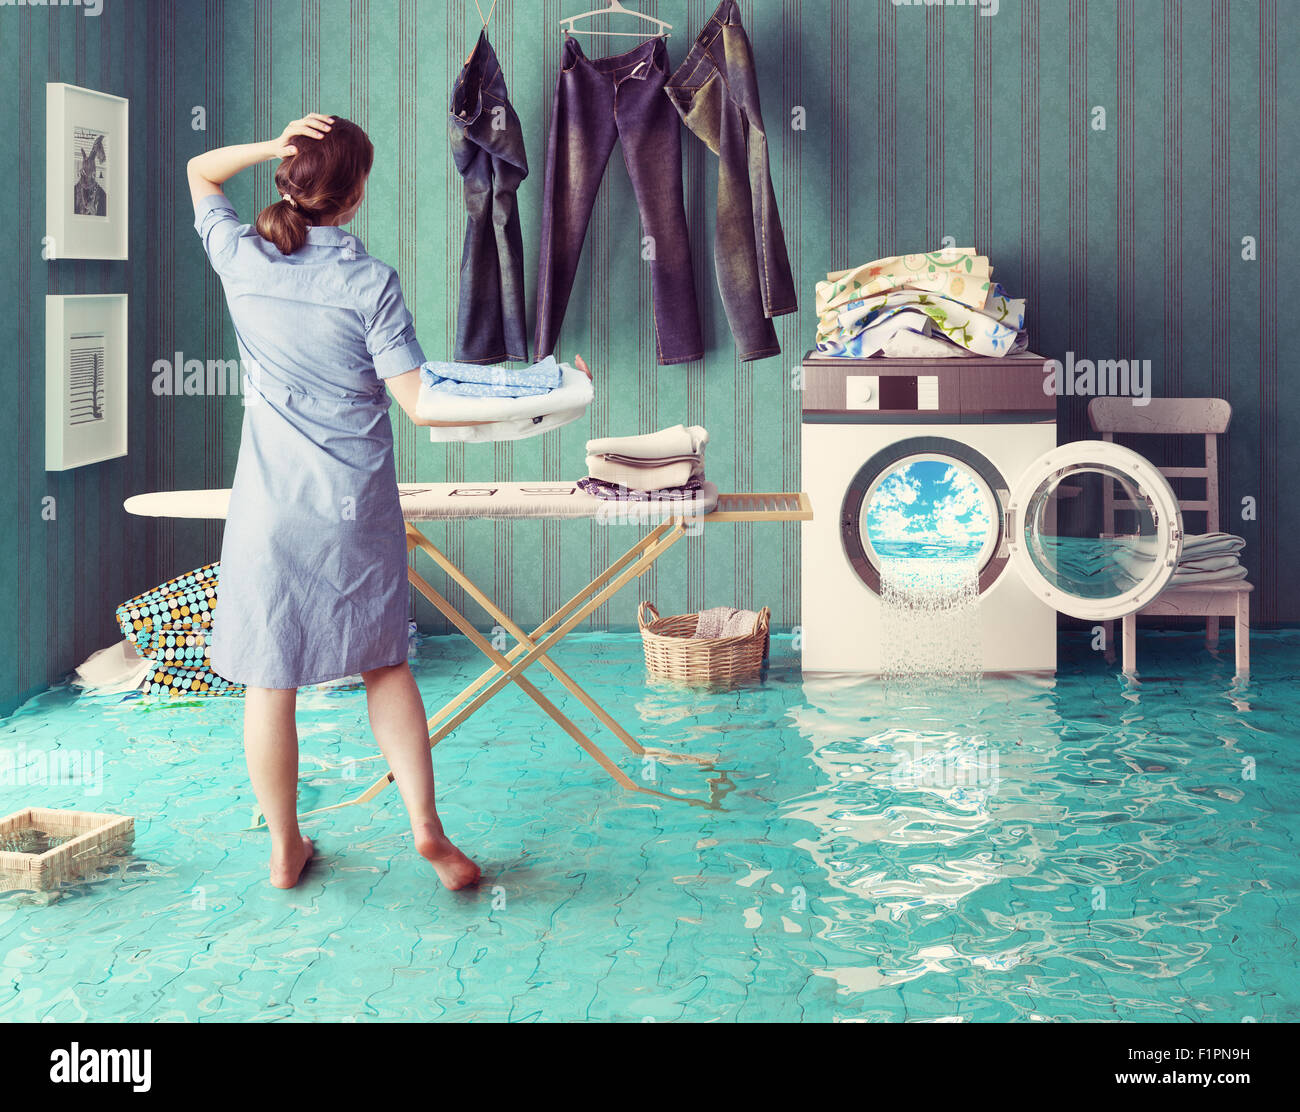 Housewife dreams. Creative concept. Photo combination - Stock Image